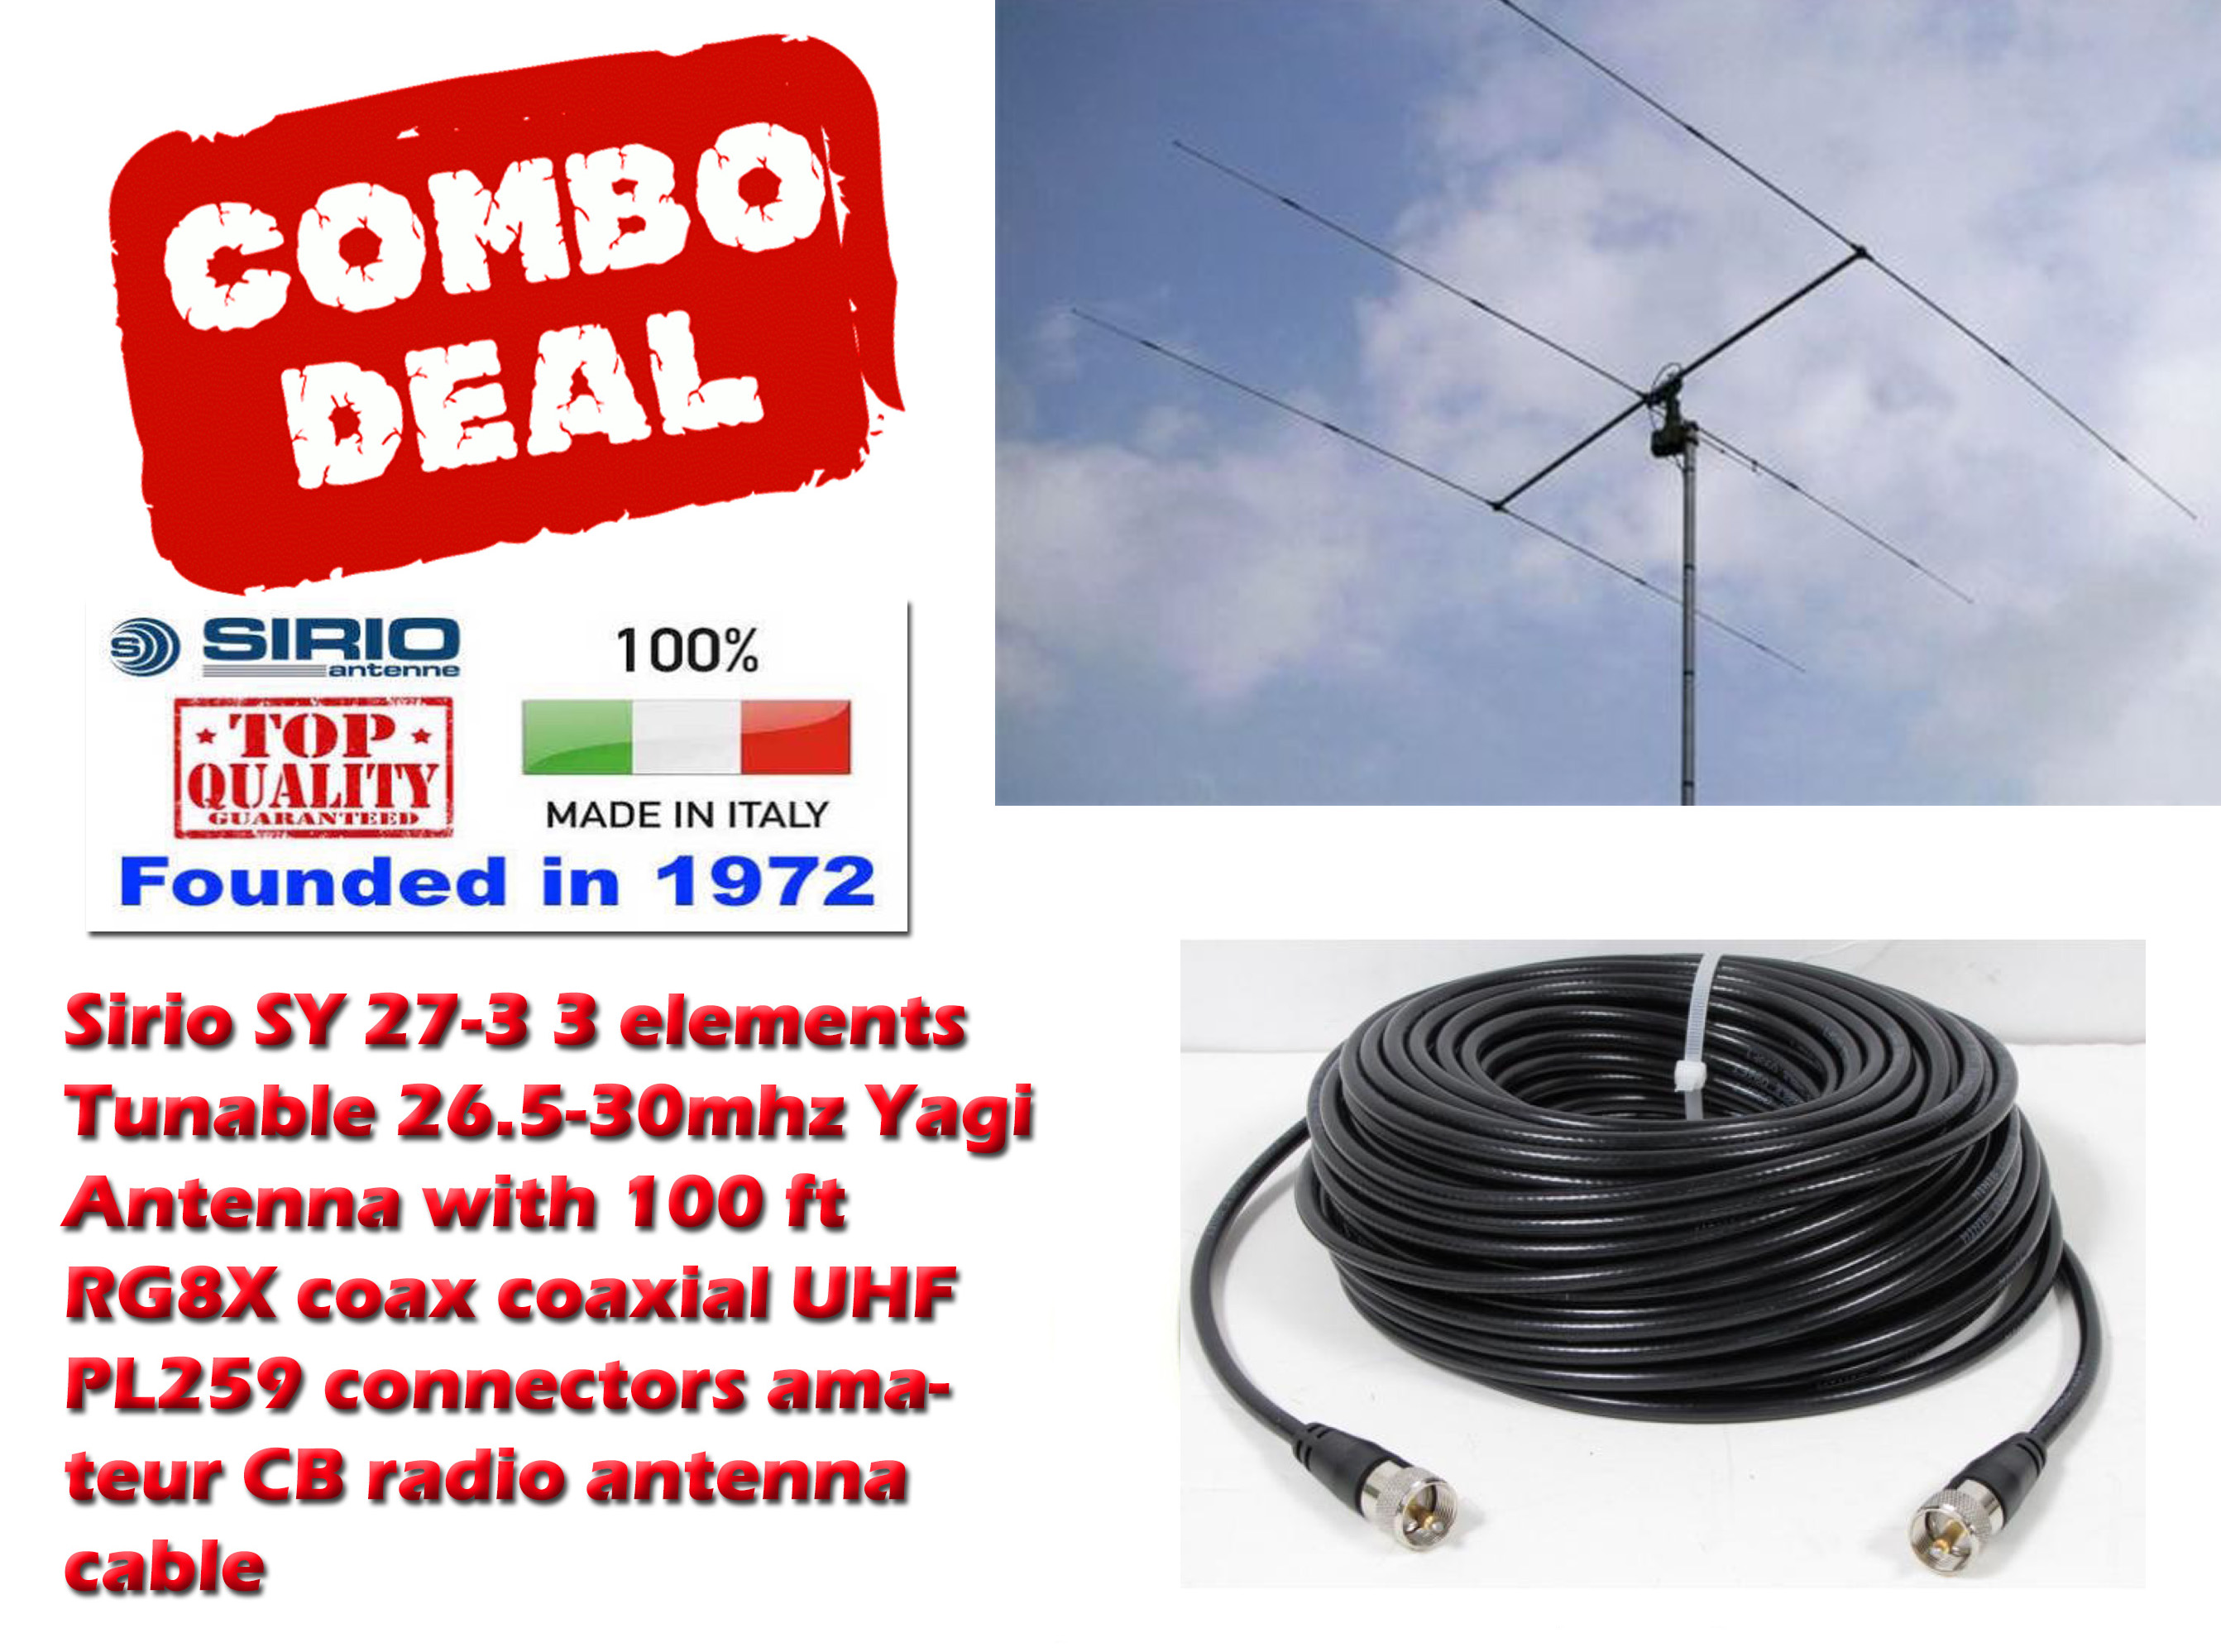 Sirio SY 27-3 3 elements Tunable Yagi Antenna with 100 Ft Coax